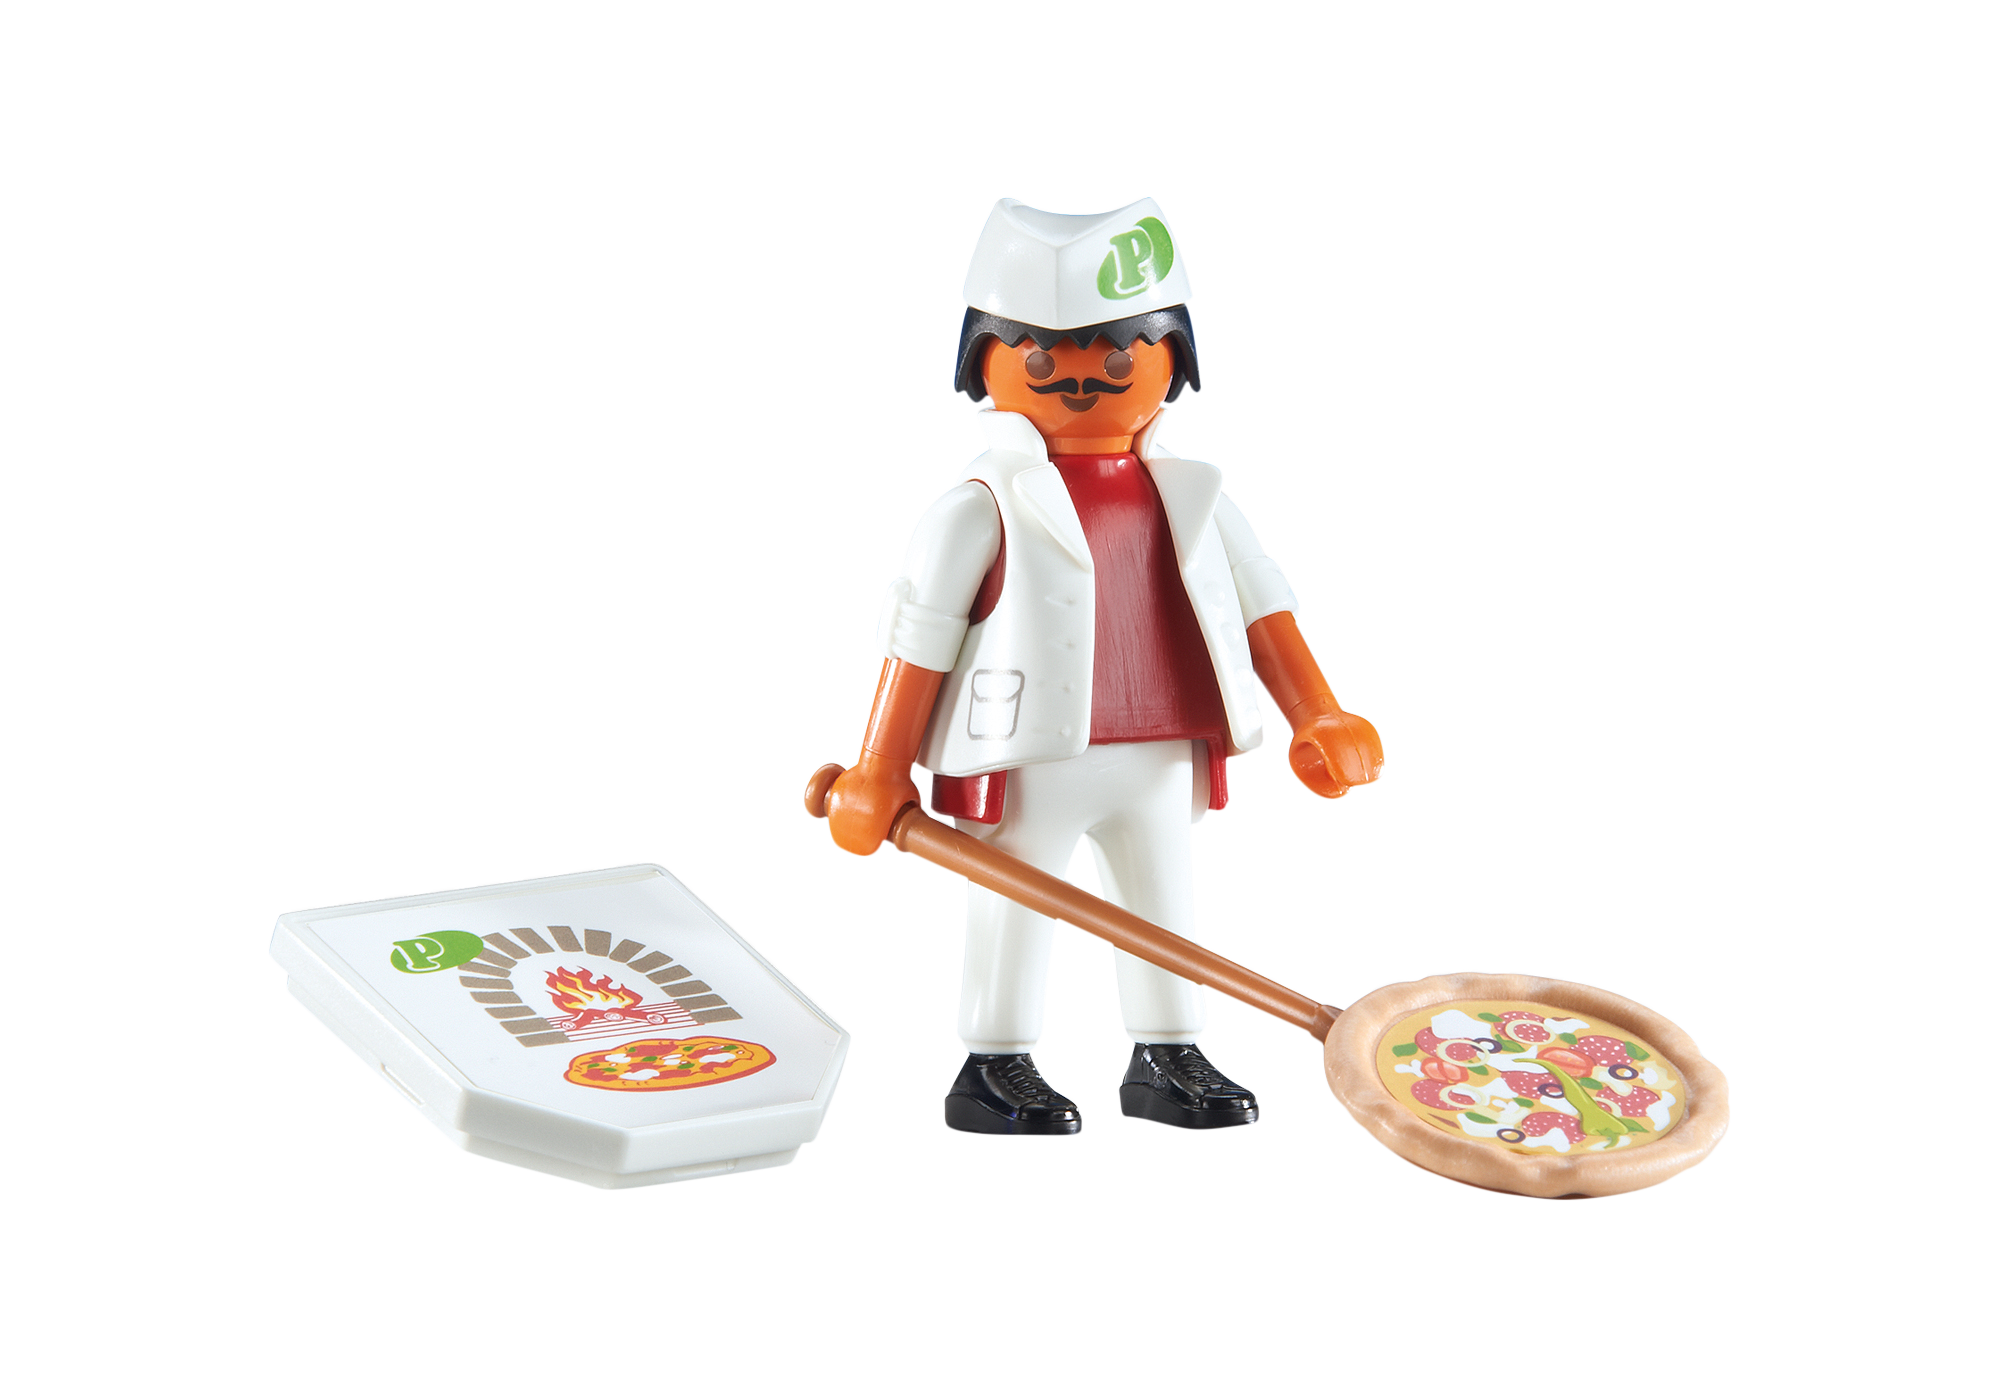 http://media.playmobil.com/i/playmobil/6392_product_detail/Pizzabakker